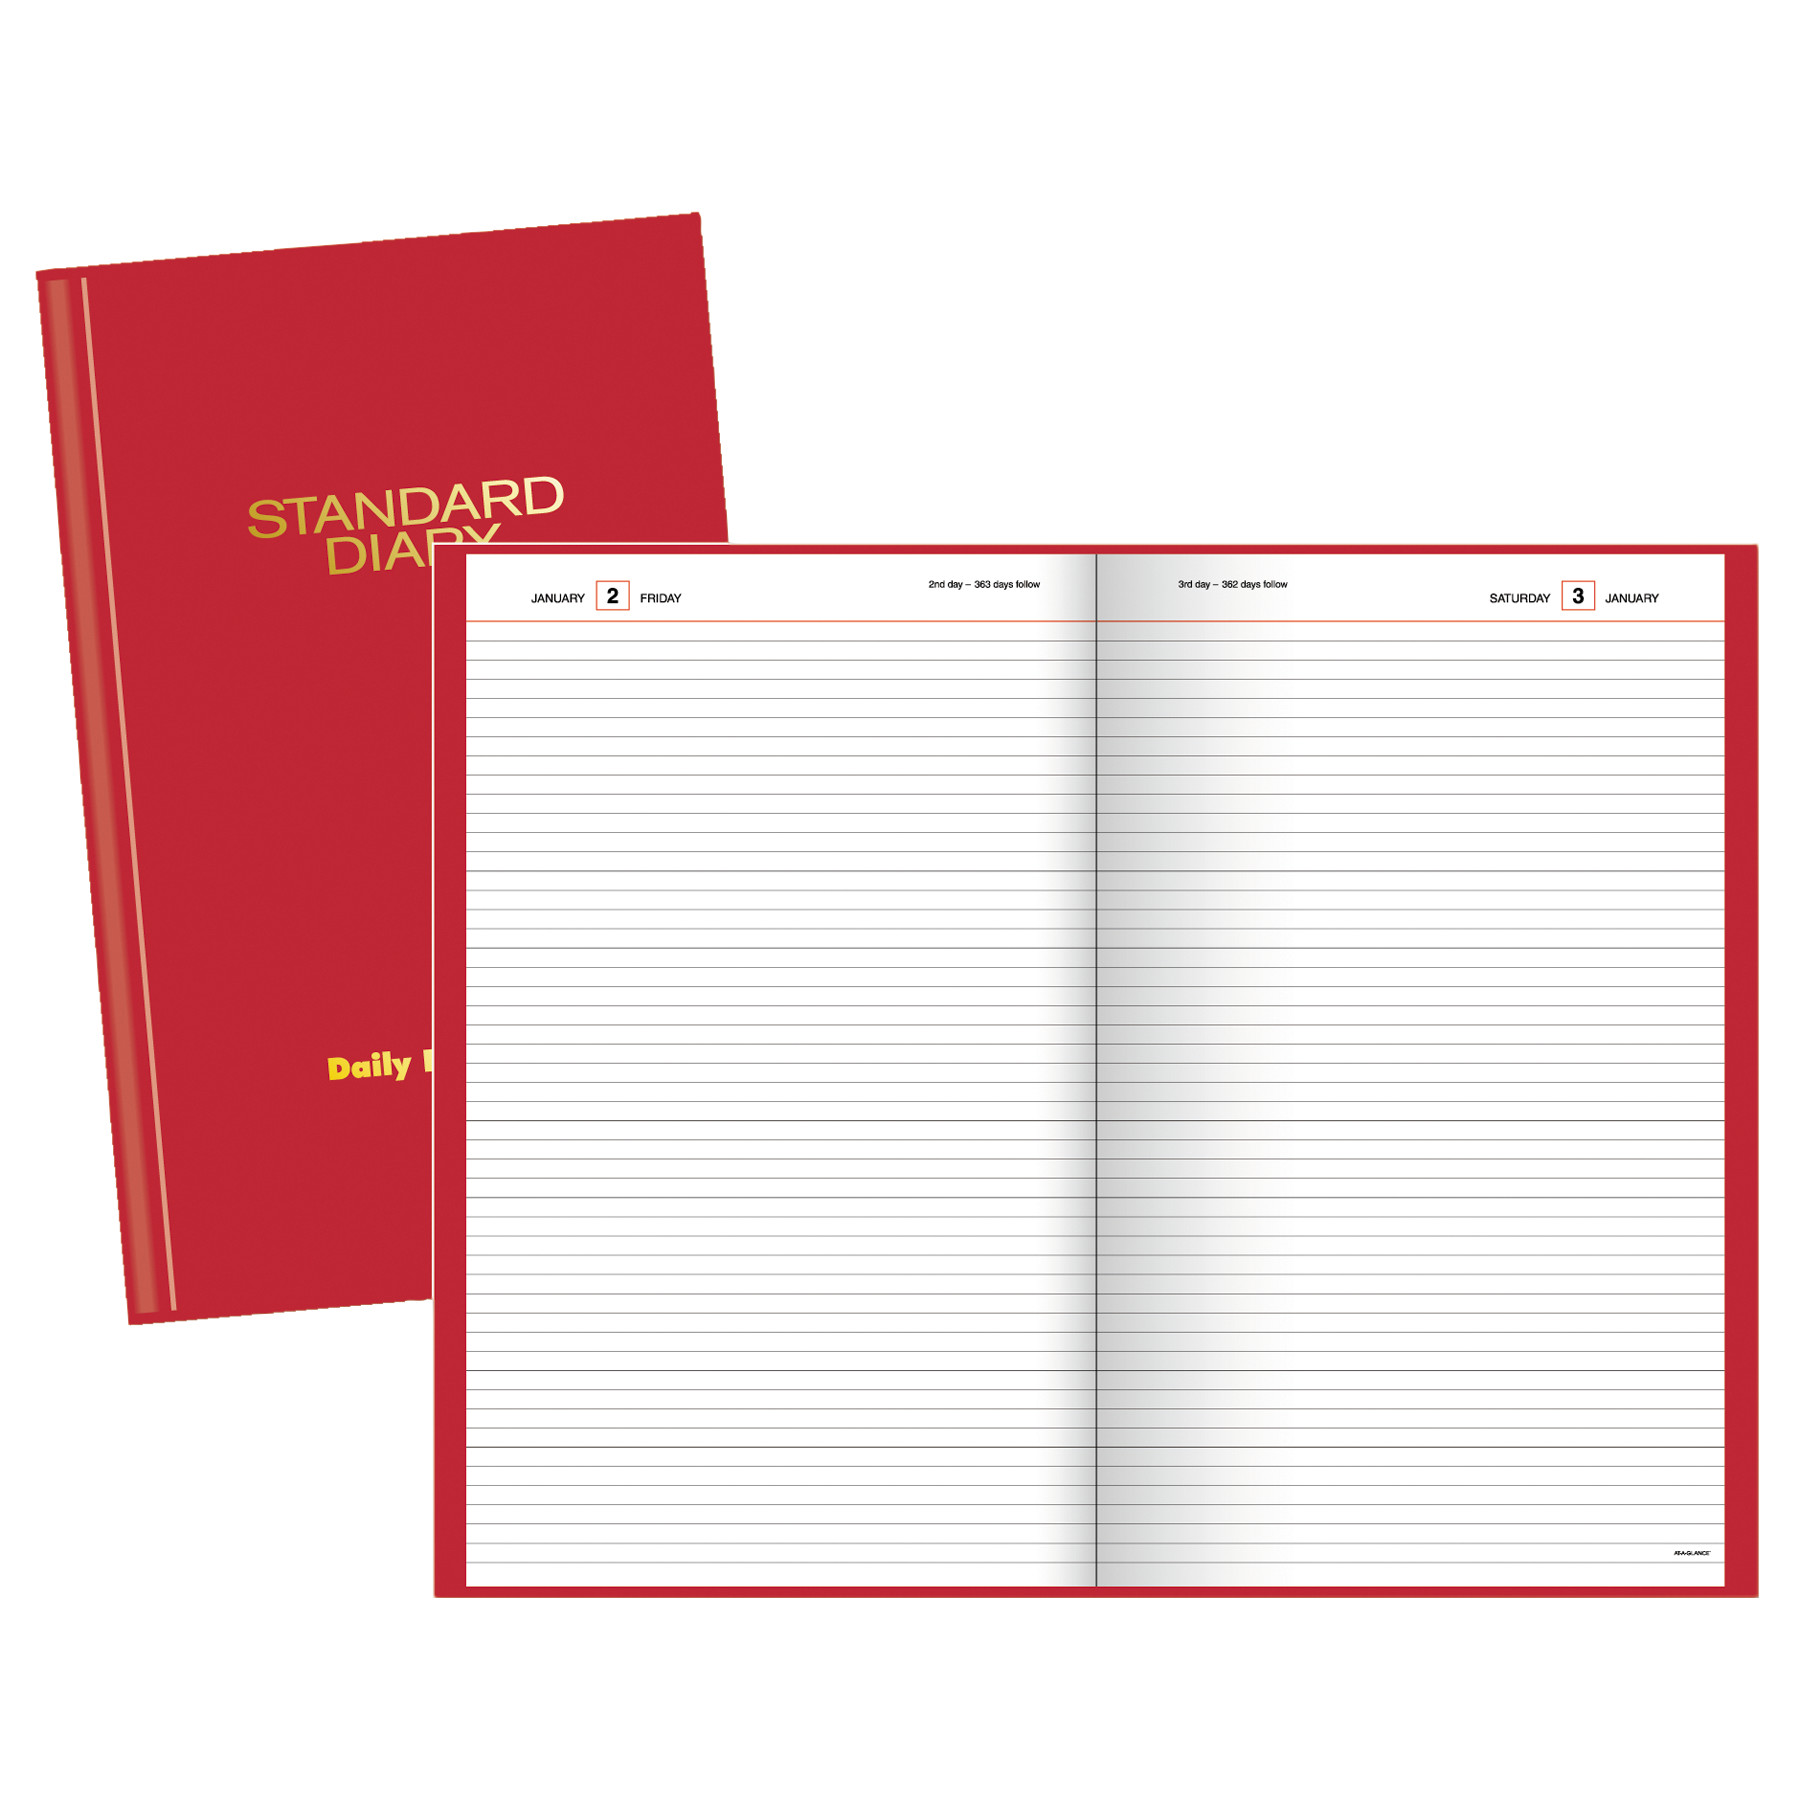 AT-A-GLANCE Standard Diary Recycled Daily Reminder, Red, 4 1/8 x 6 5/8, 2018